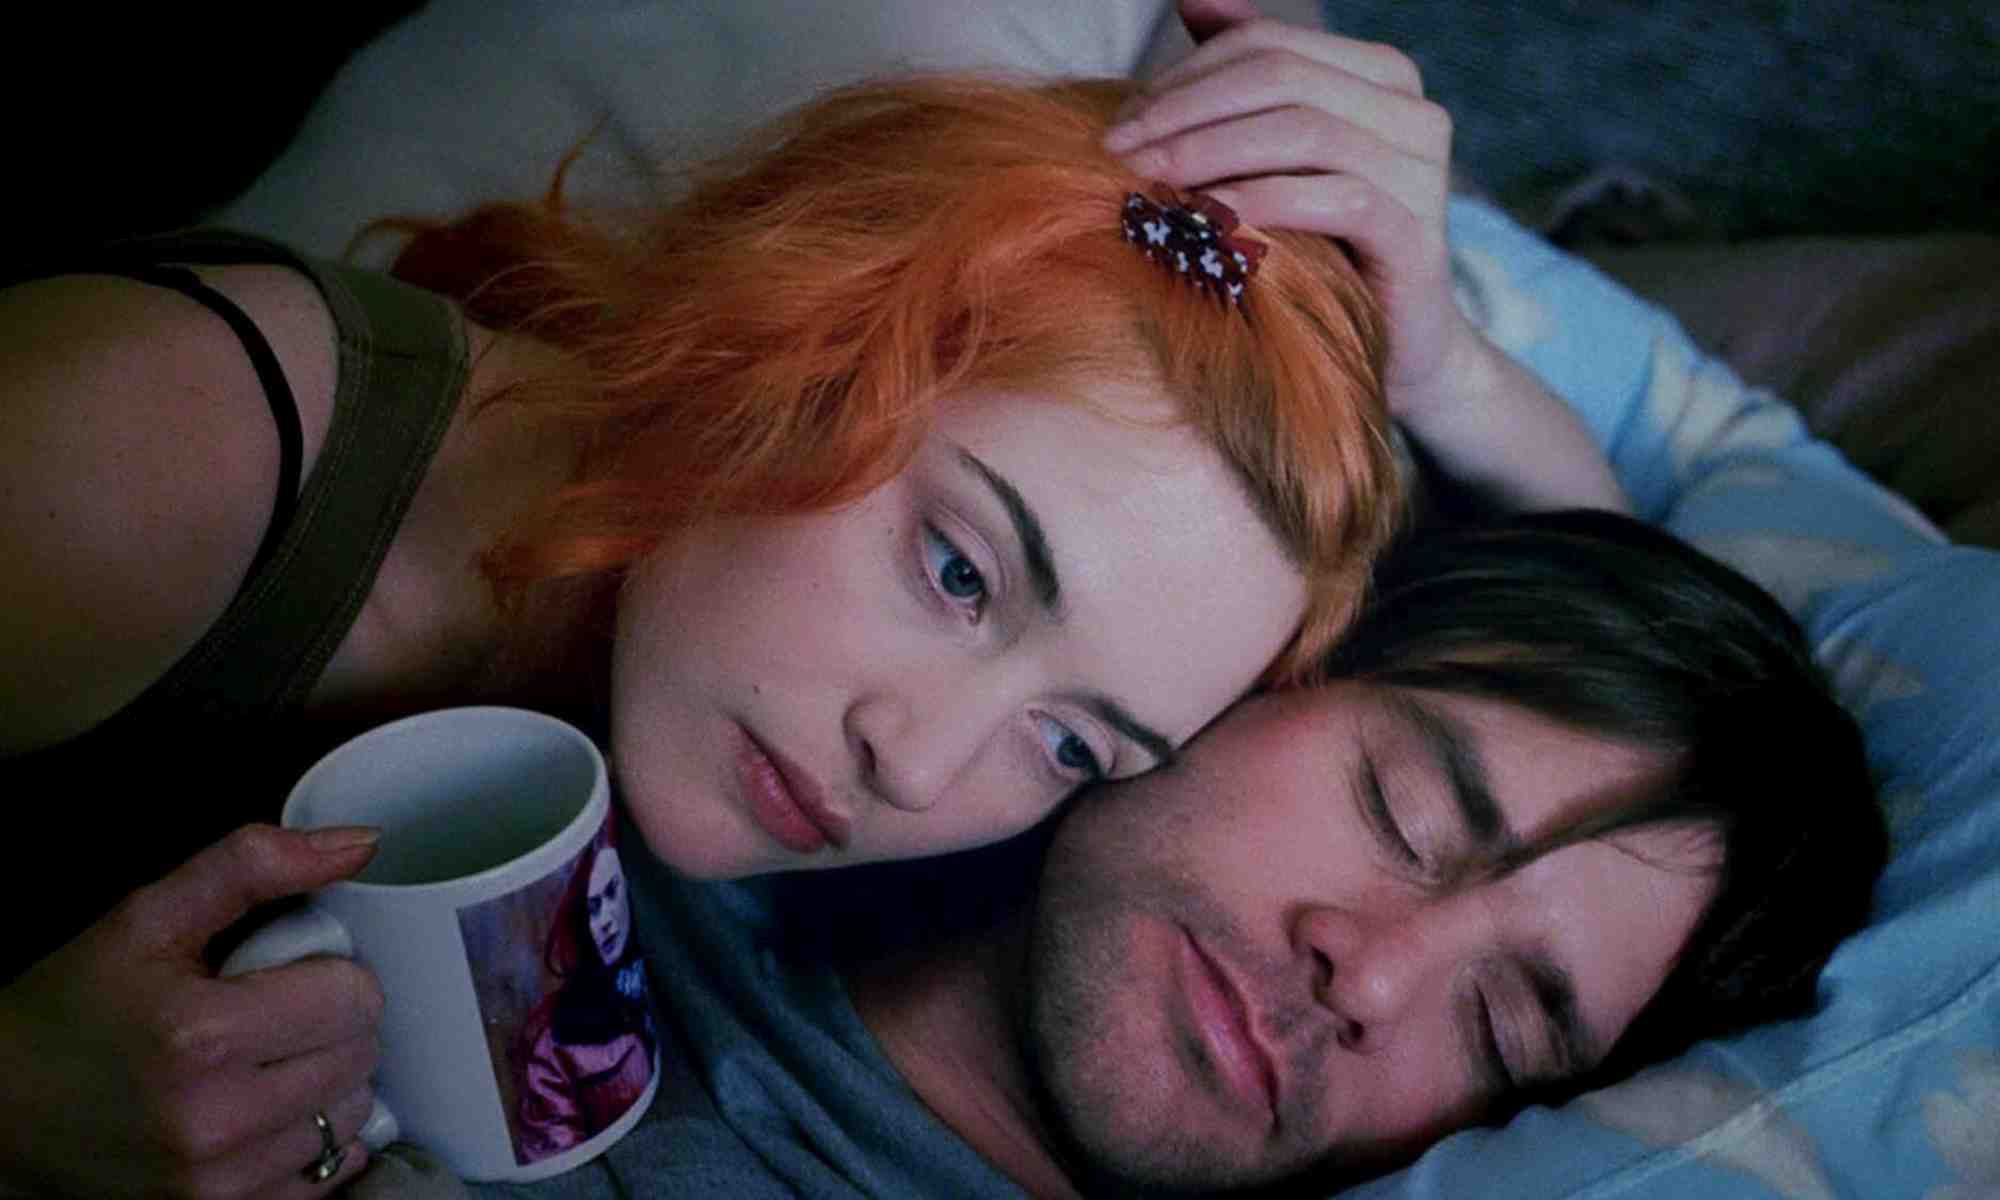 eternal-sunshine-of-the-spotless-mind cele mai bune filme de dragoste netflix